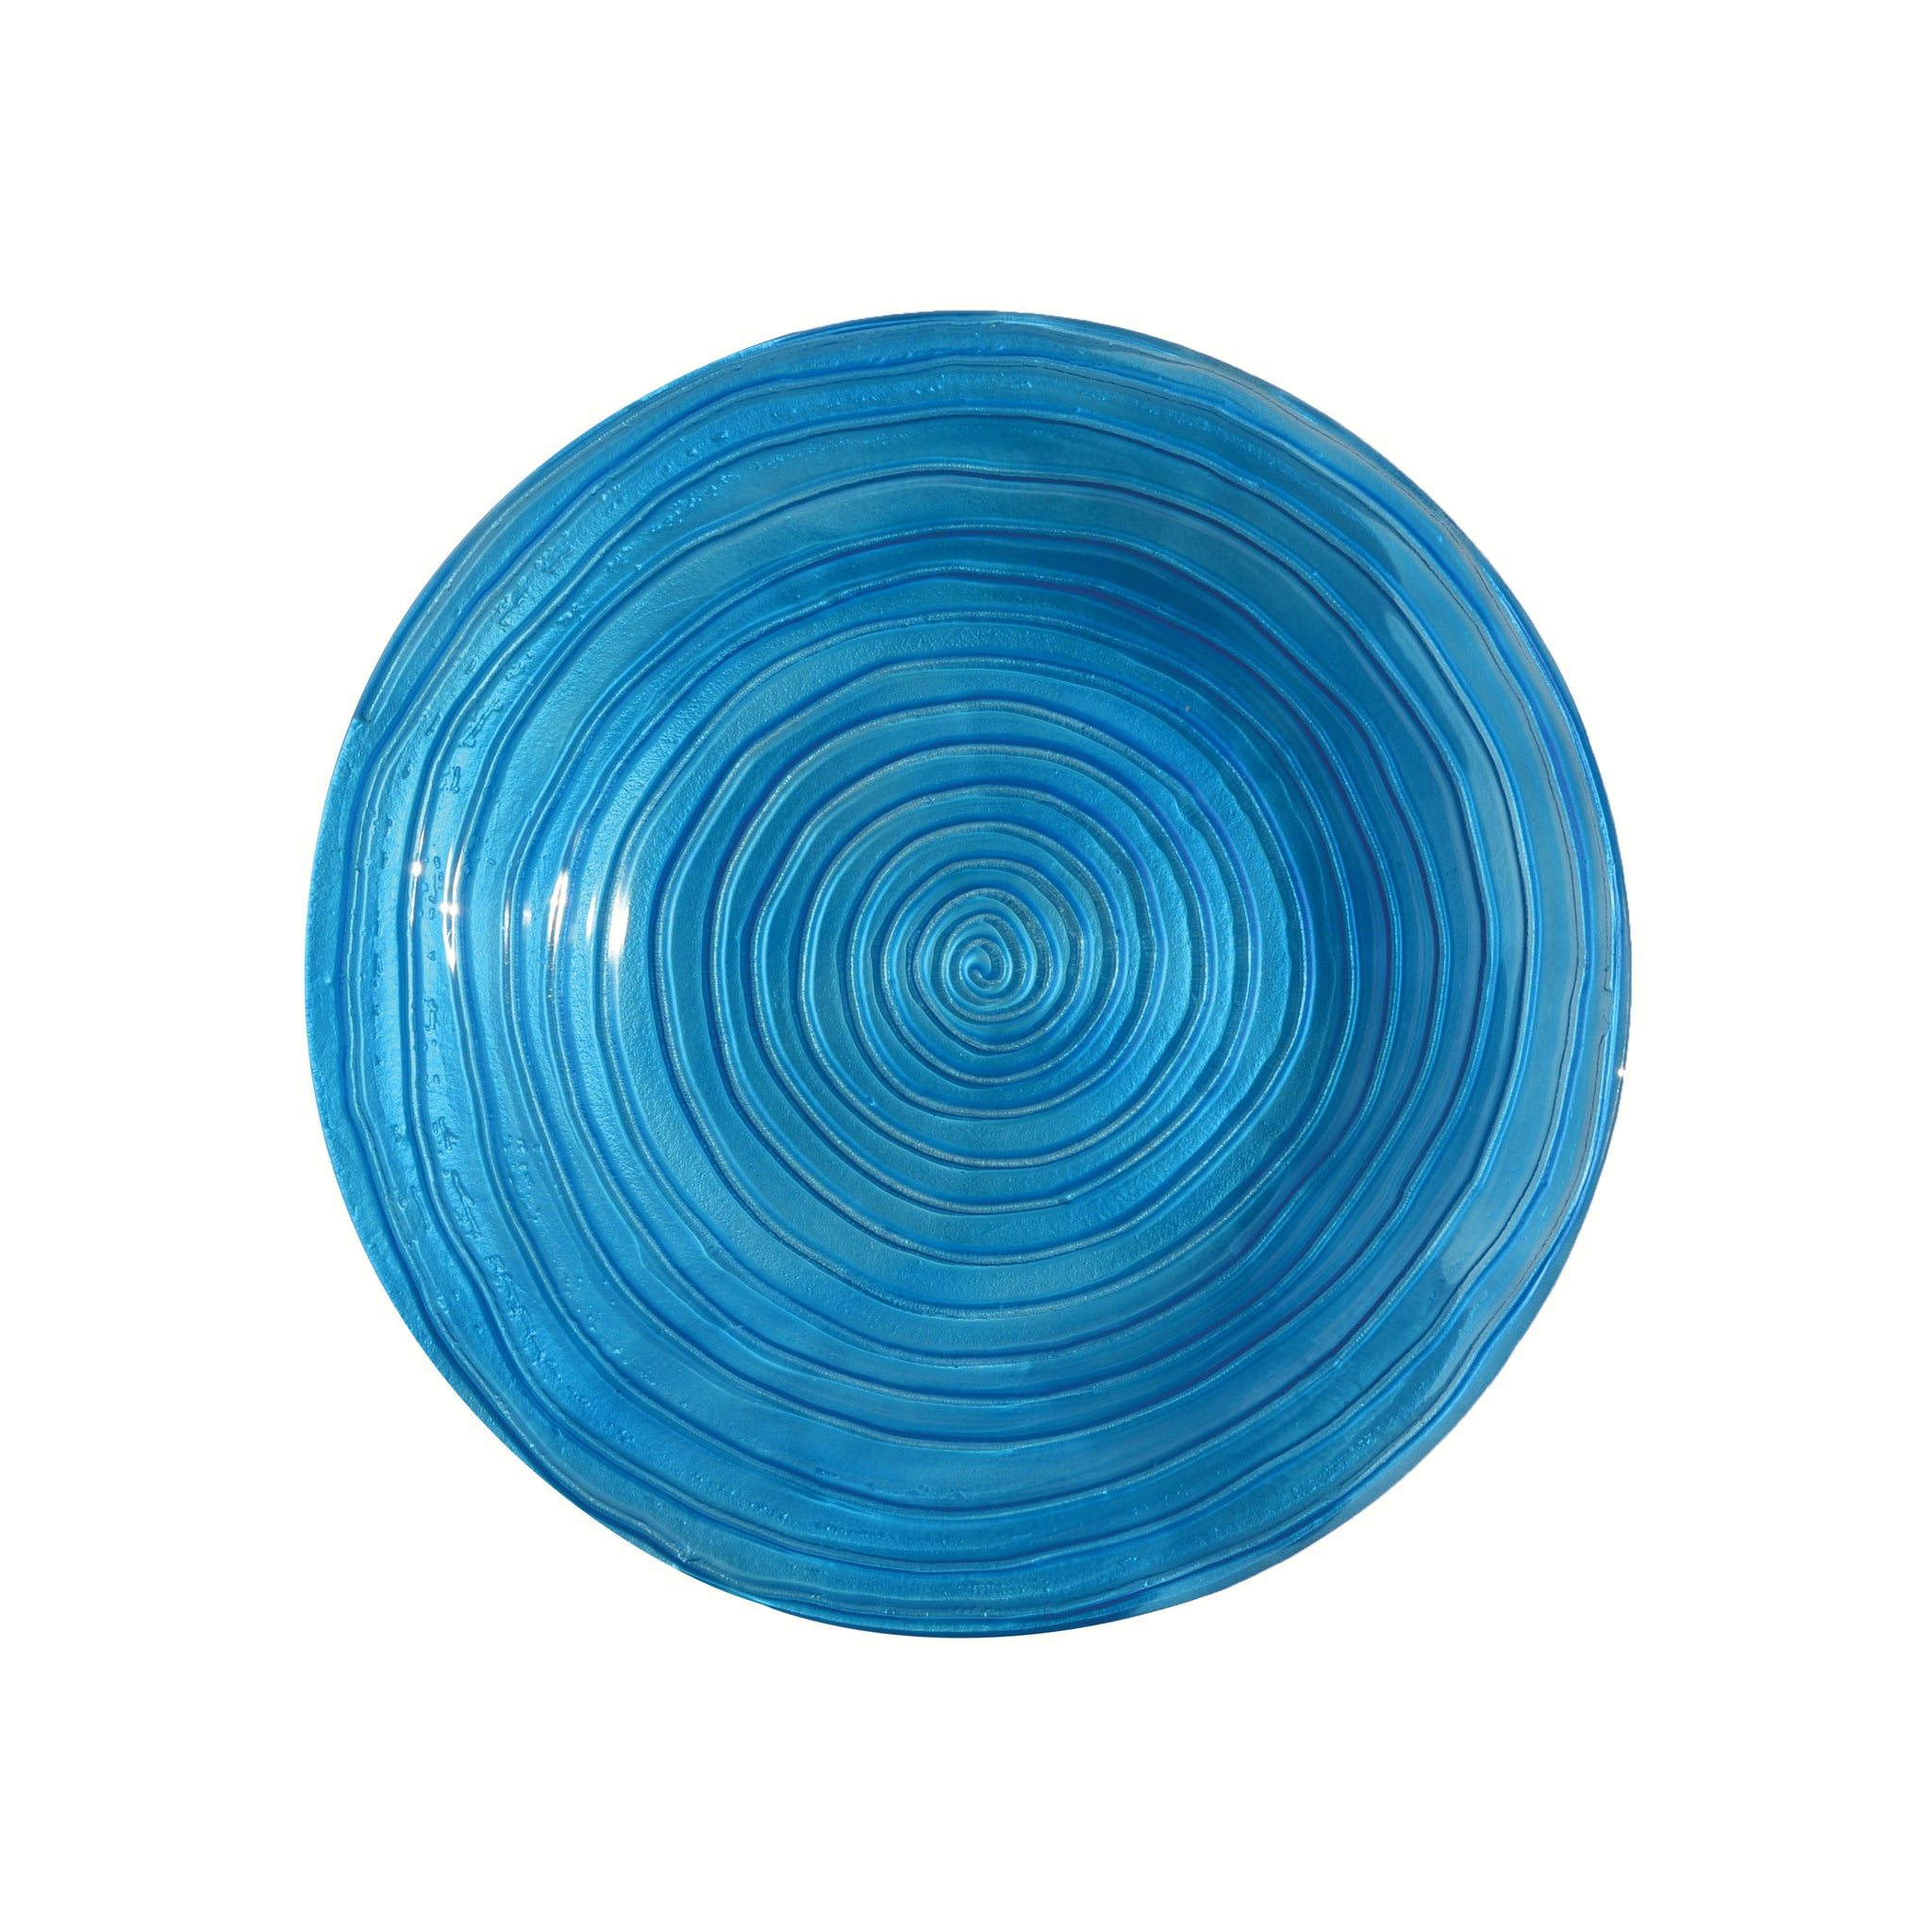 Blue Swirls Birdbath Bowl